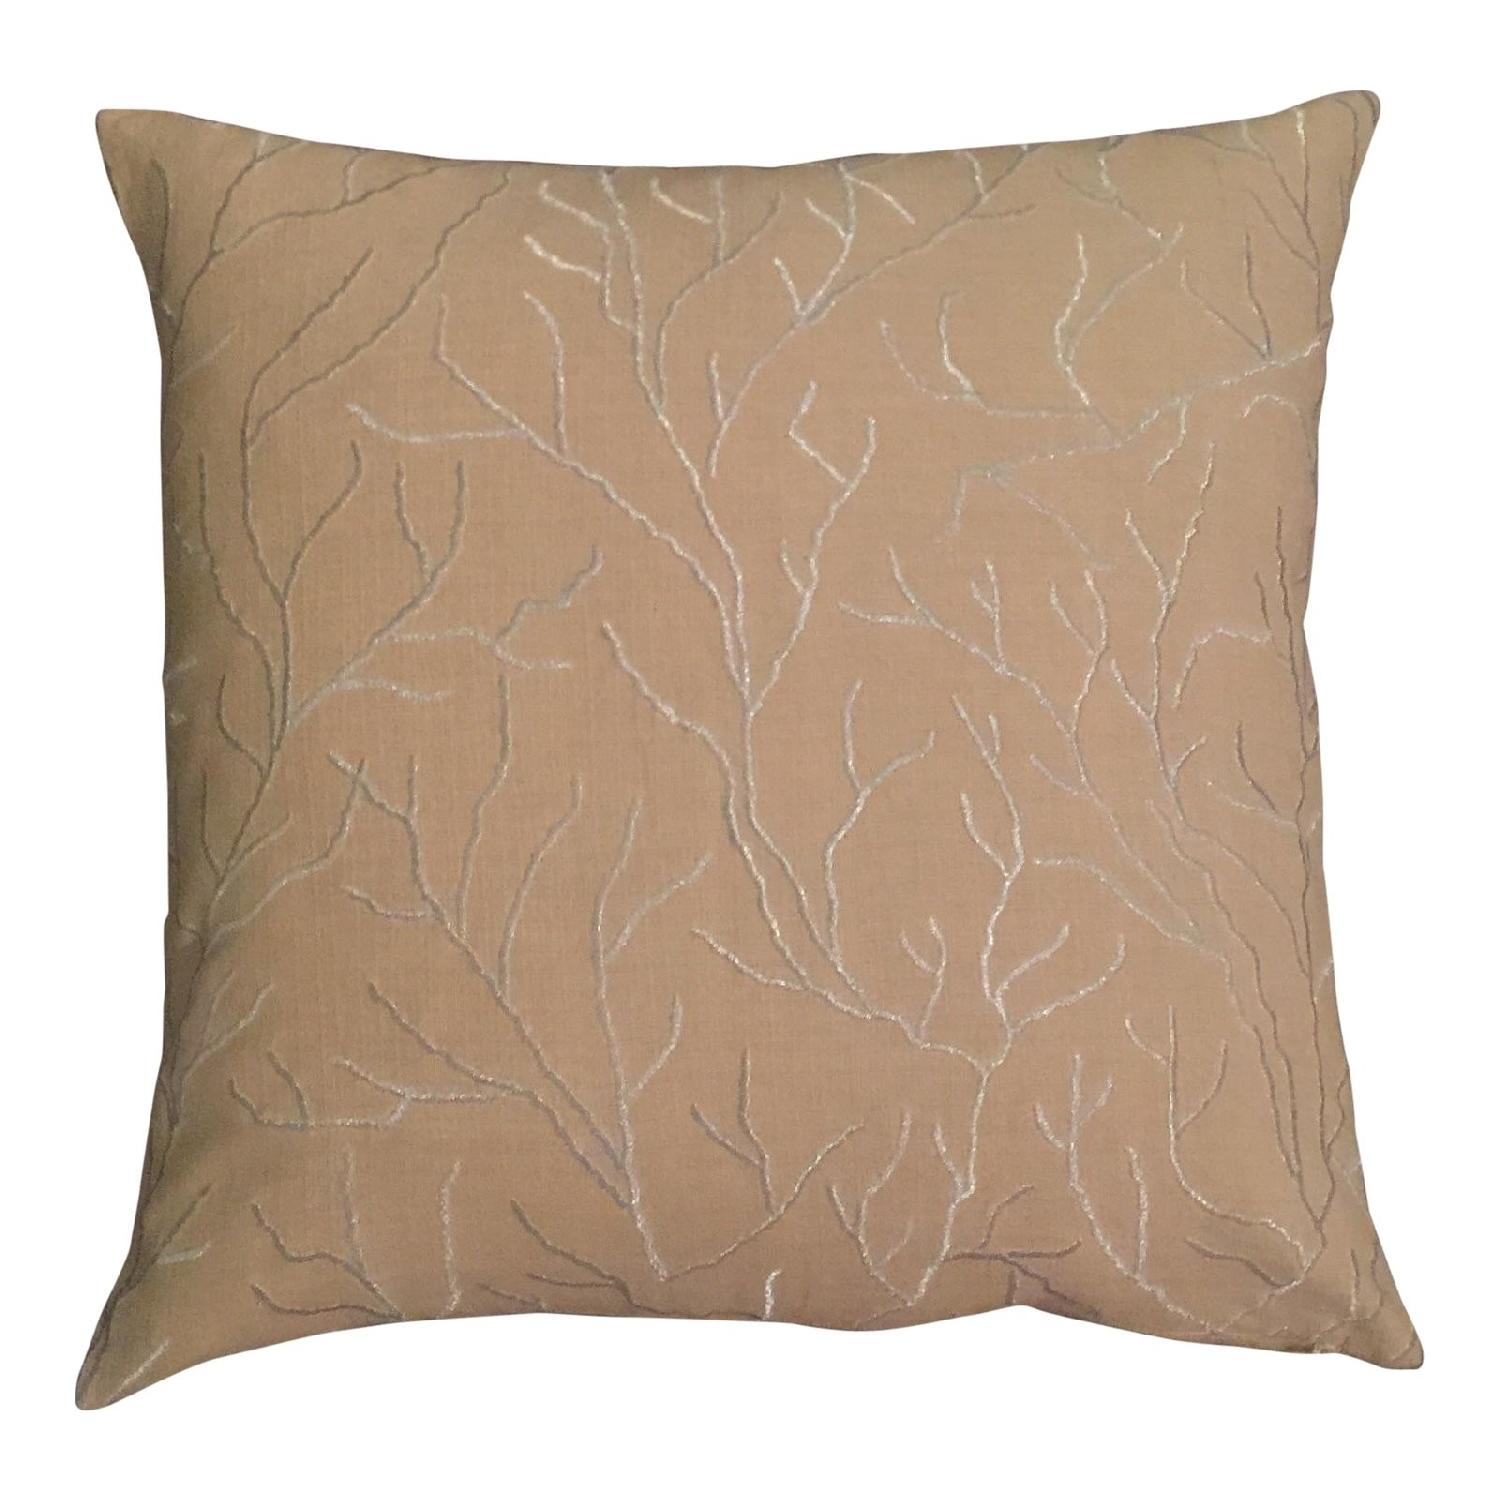 Linear Branch Embroidered Pillow - image-0